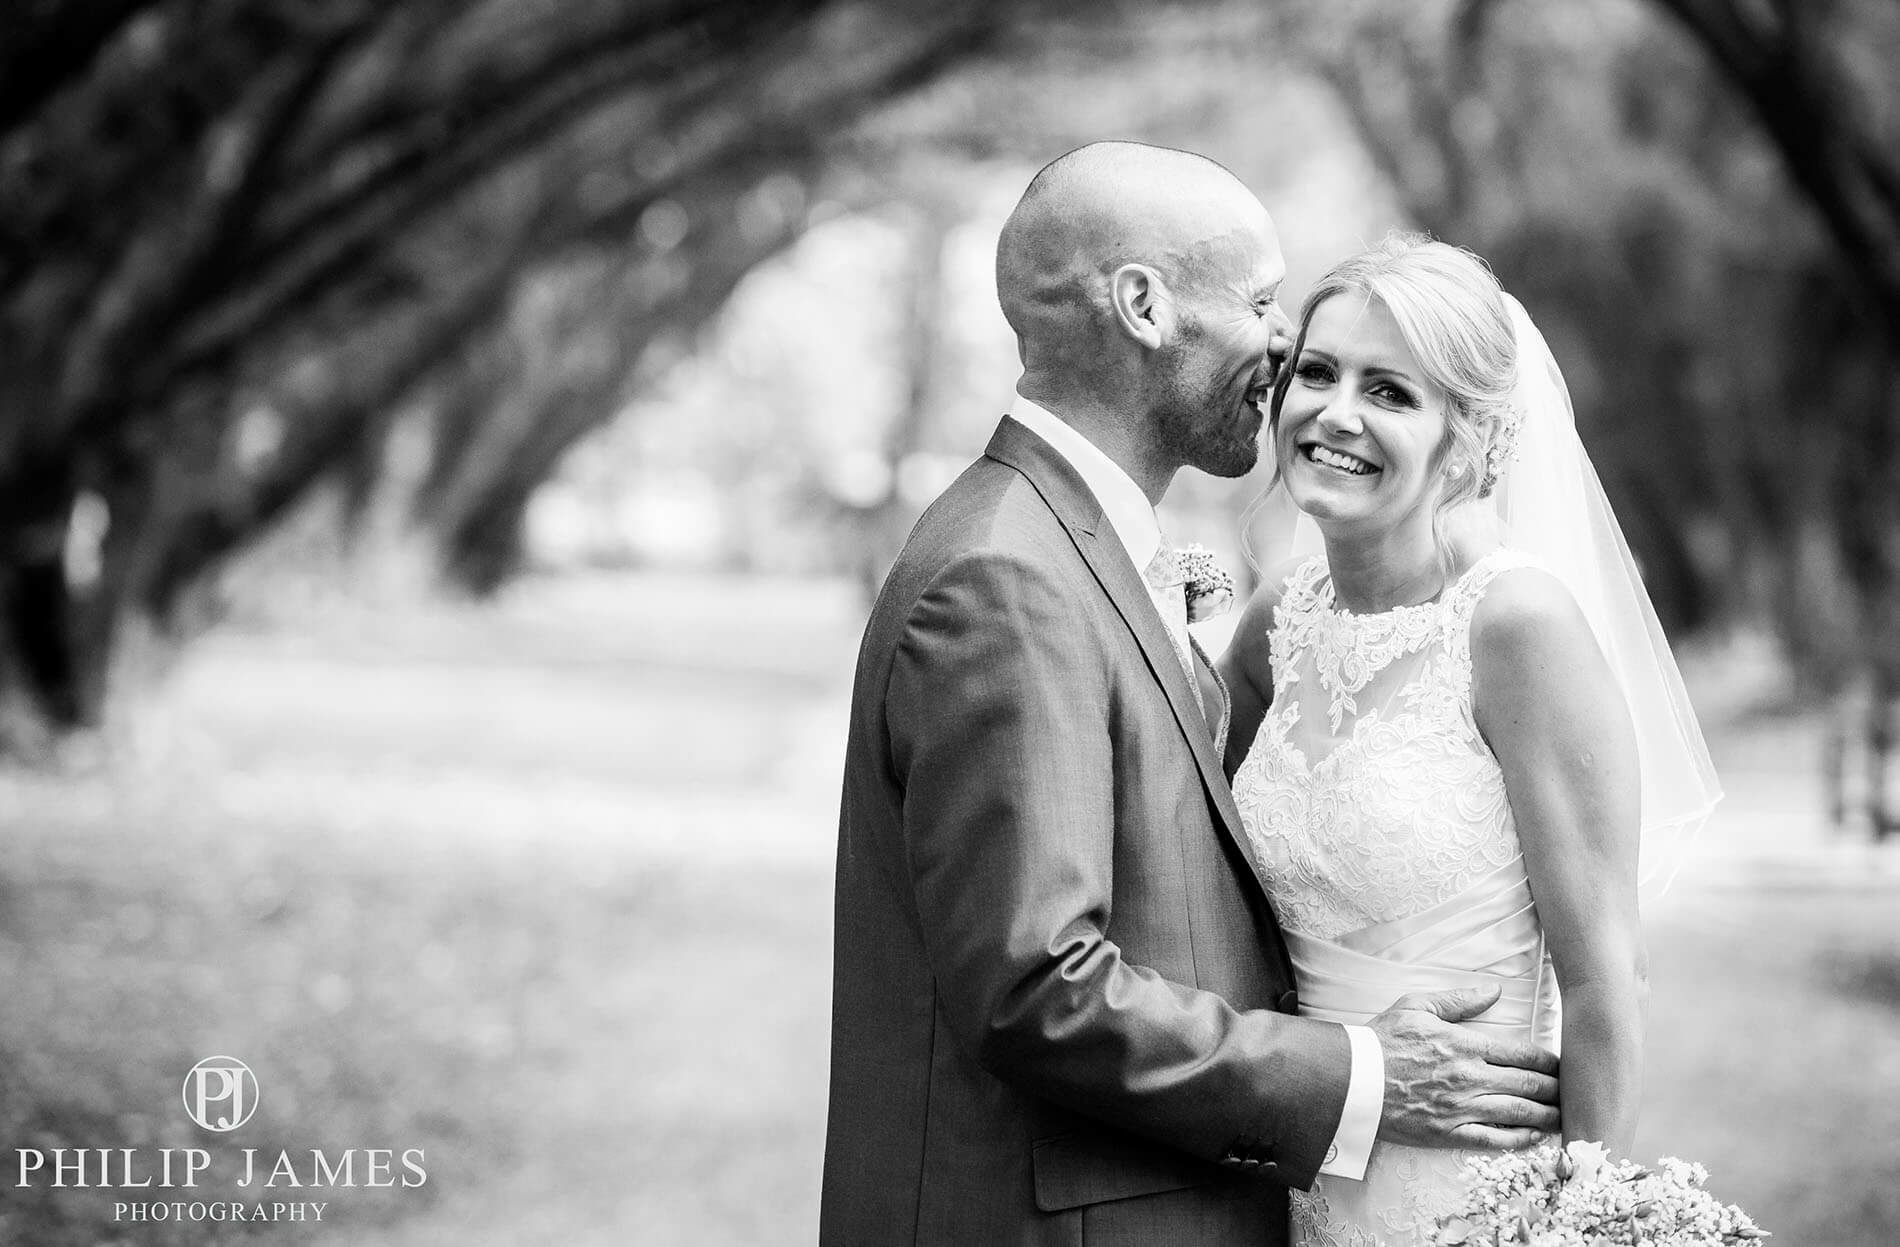 Philip James specializing in Wedding Photography Birmingham - Moments (139 of 170)